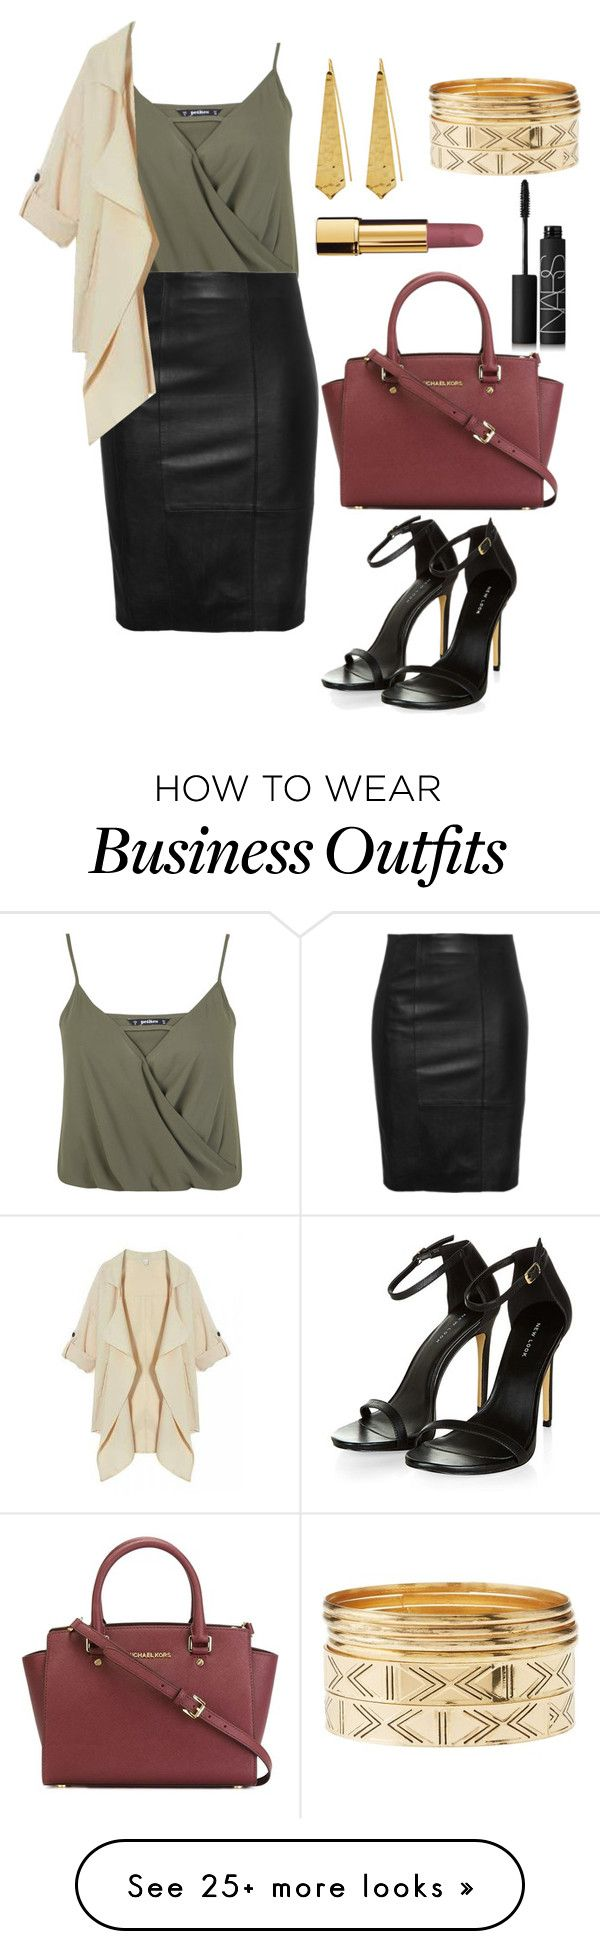 """WORK DAY!!"" by katniss1212 on Polyvore featuring Miss Selfridge, MICHAEL Michael Kors, Panacea, Charlotte Russe, Chanel and NARS Cosmetics"